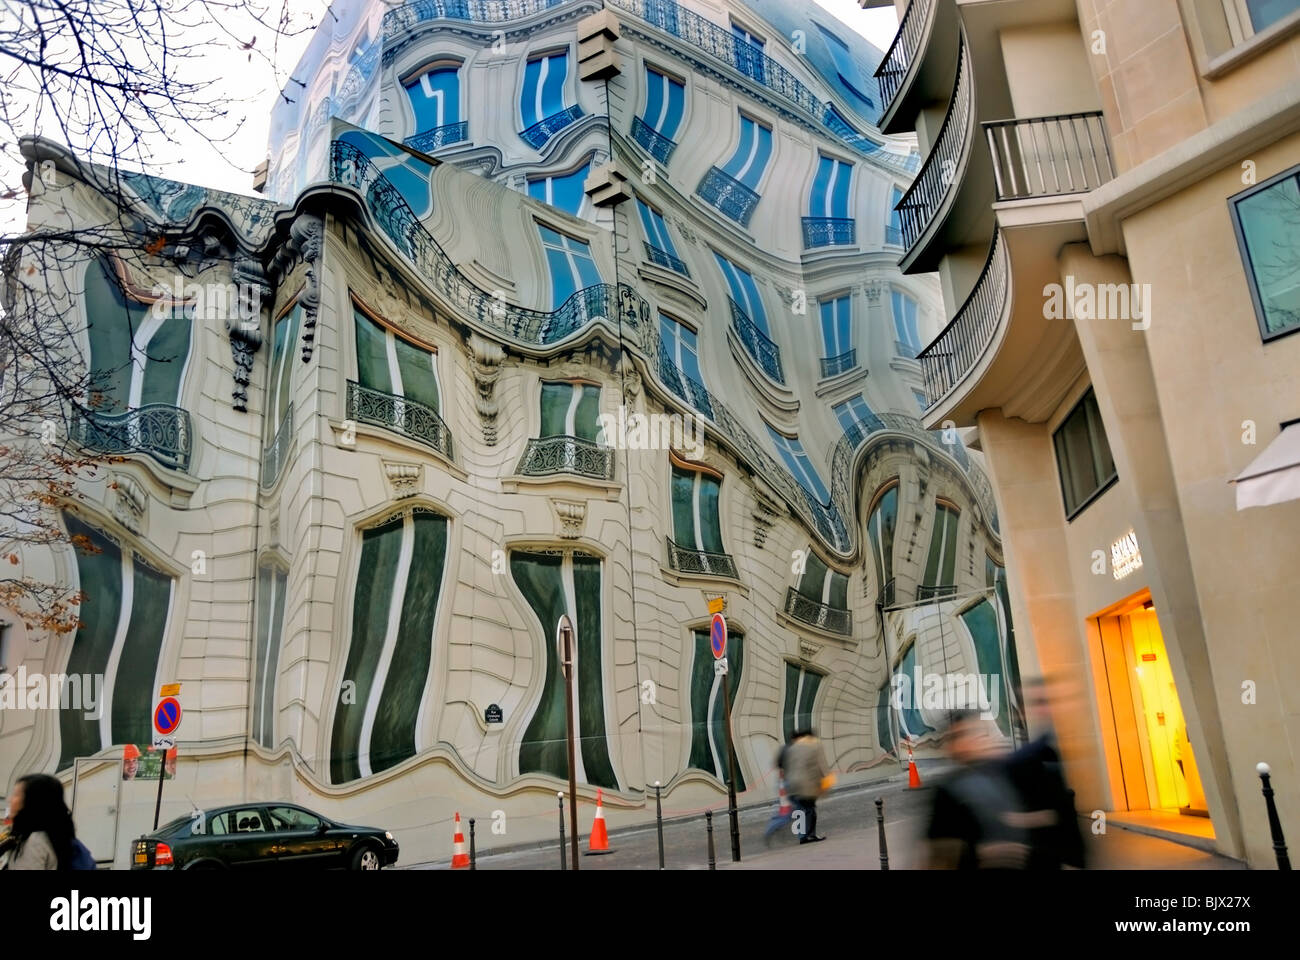 Paris, France, Surrealist Public Street Art on Bleecker Corp. Headquarters Building, - Stock Image